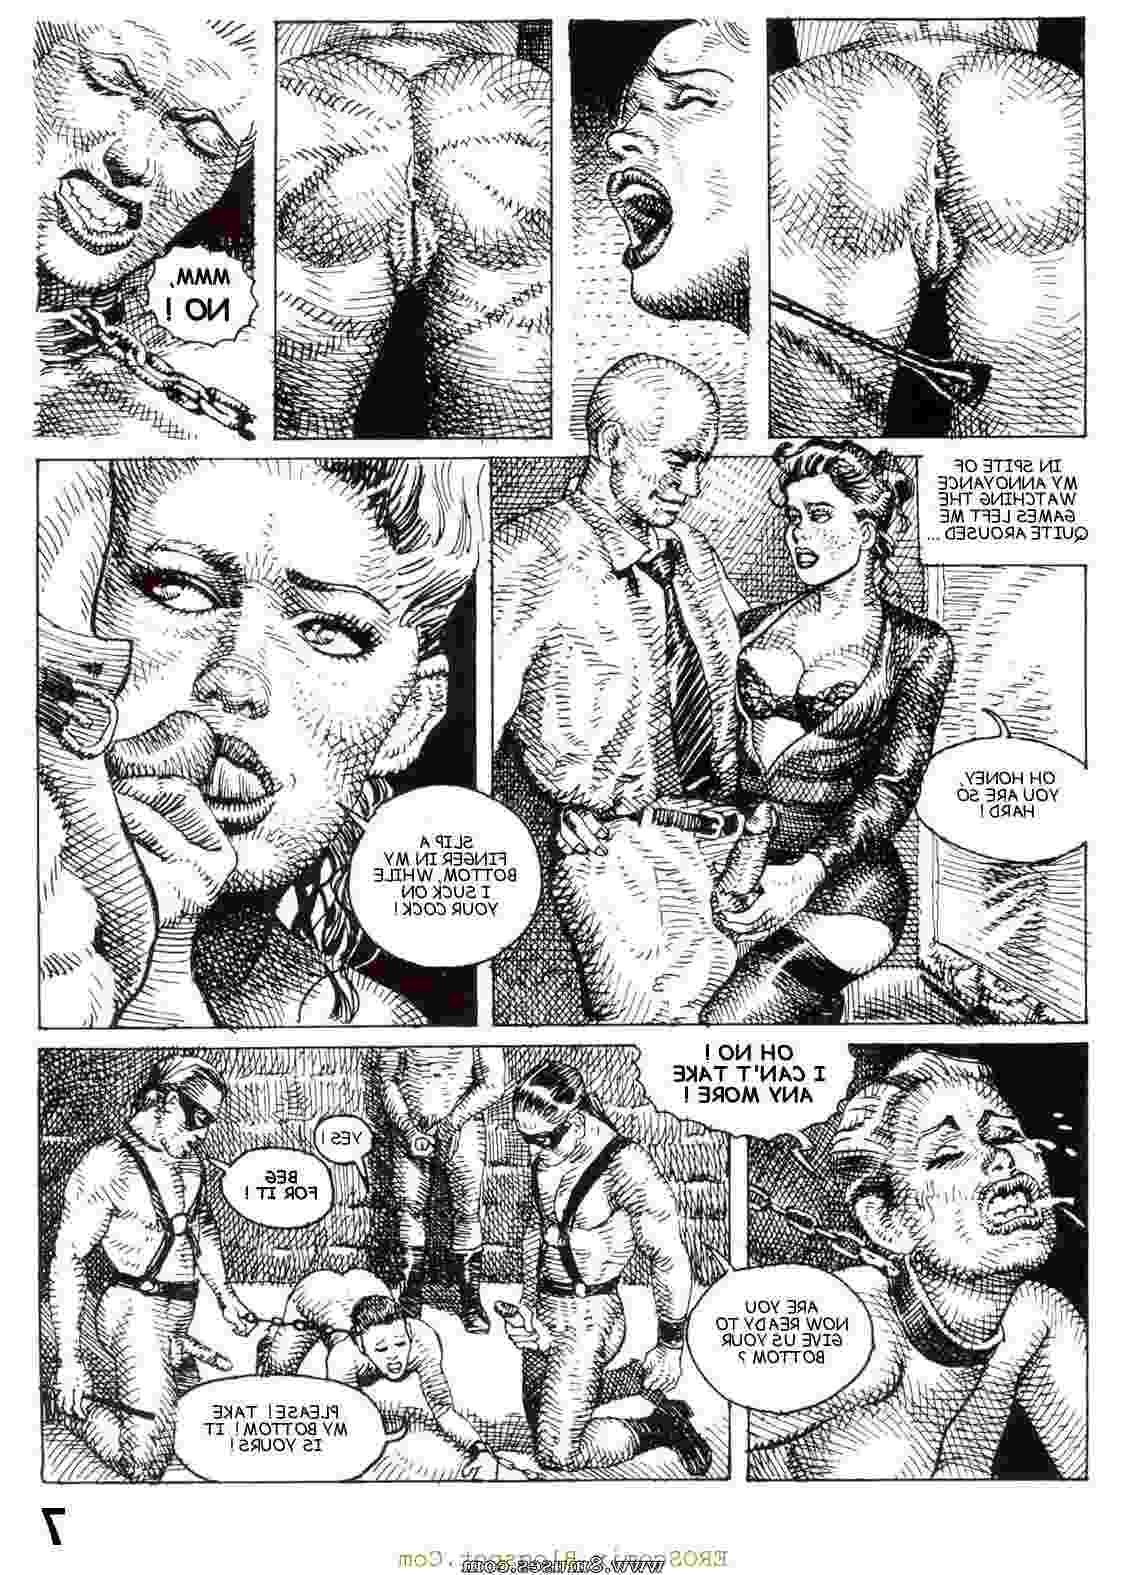 Bruno-Coq-Comics/Secret-Society Secret_Society__8muses_-_Sex_and_Porn_Comics_8.jpg